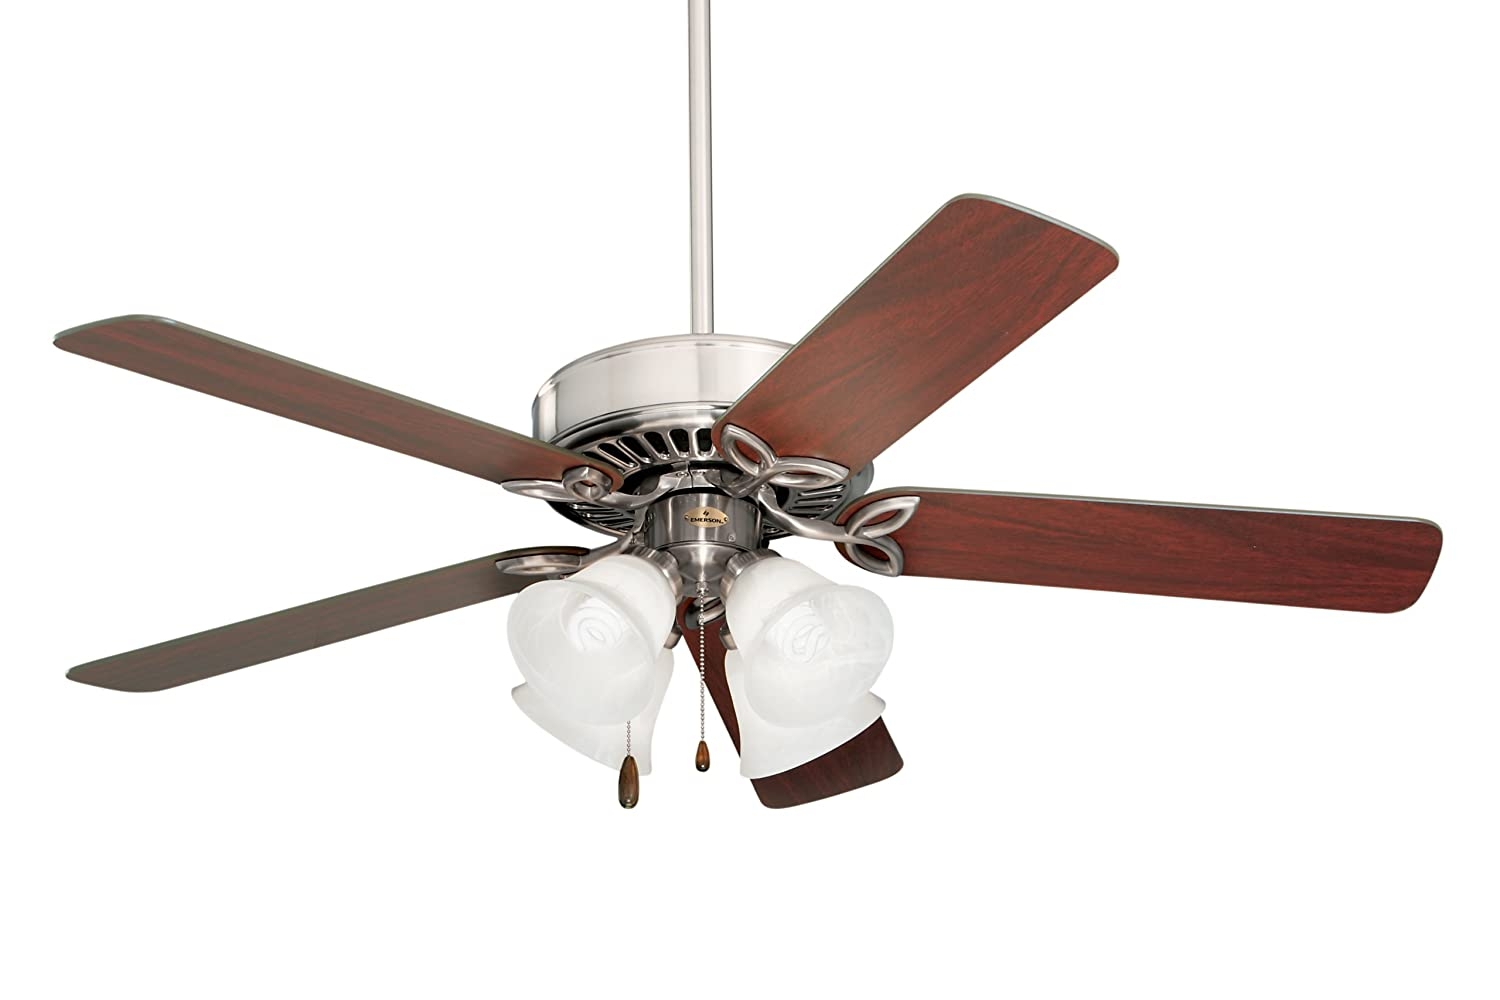 Amazon emerson ceiling fans cf710bs pro series ii low profile amazon emerson ceiling fans cf710bs pro series ii low profile hugger ceiling fan with light 42 inch blades brushed steel finish home improvement aloadofball Image collections